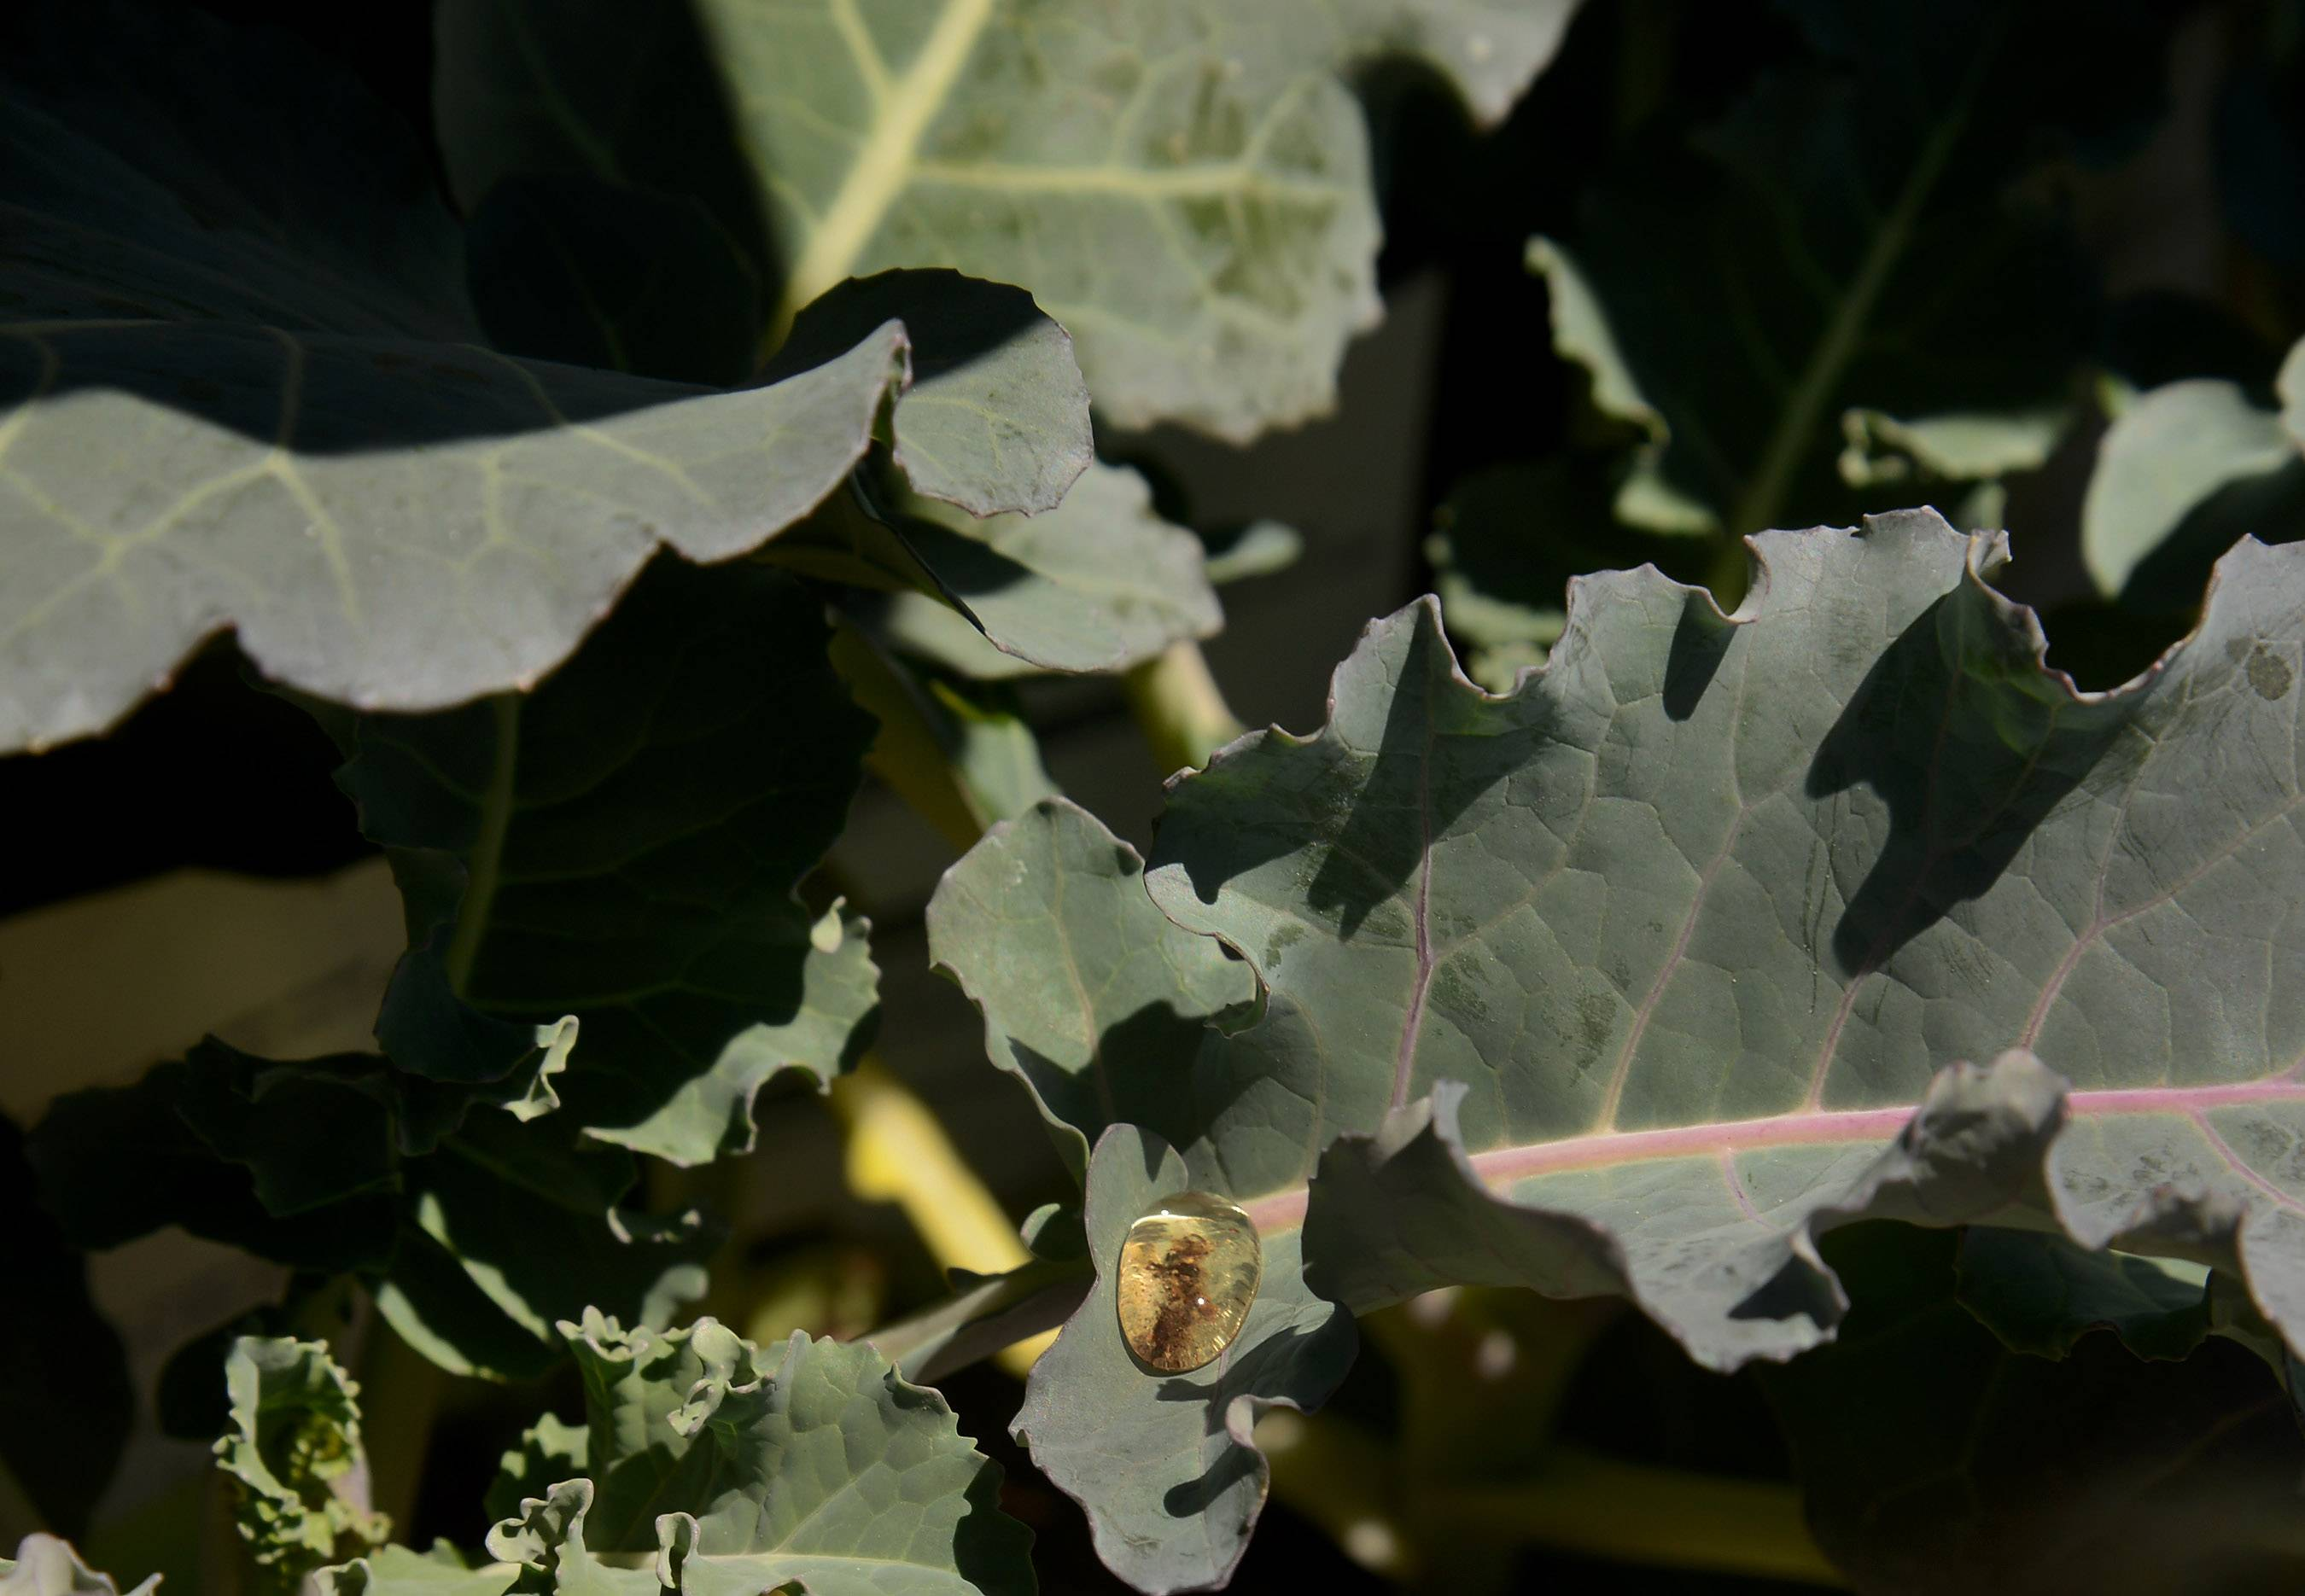 Broccoli, shown here at Lurvey's Garden Center in Des Plaines, is an example of a cool-season crop that can handle the cold nights. They can be planted now for a June harvest and again in late August for a fall harvest.